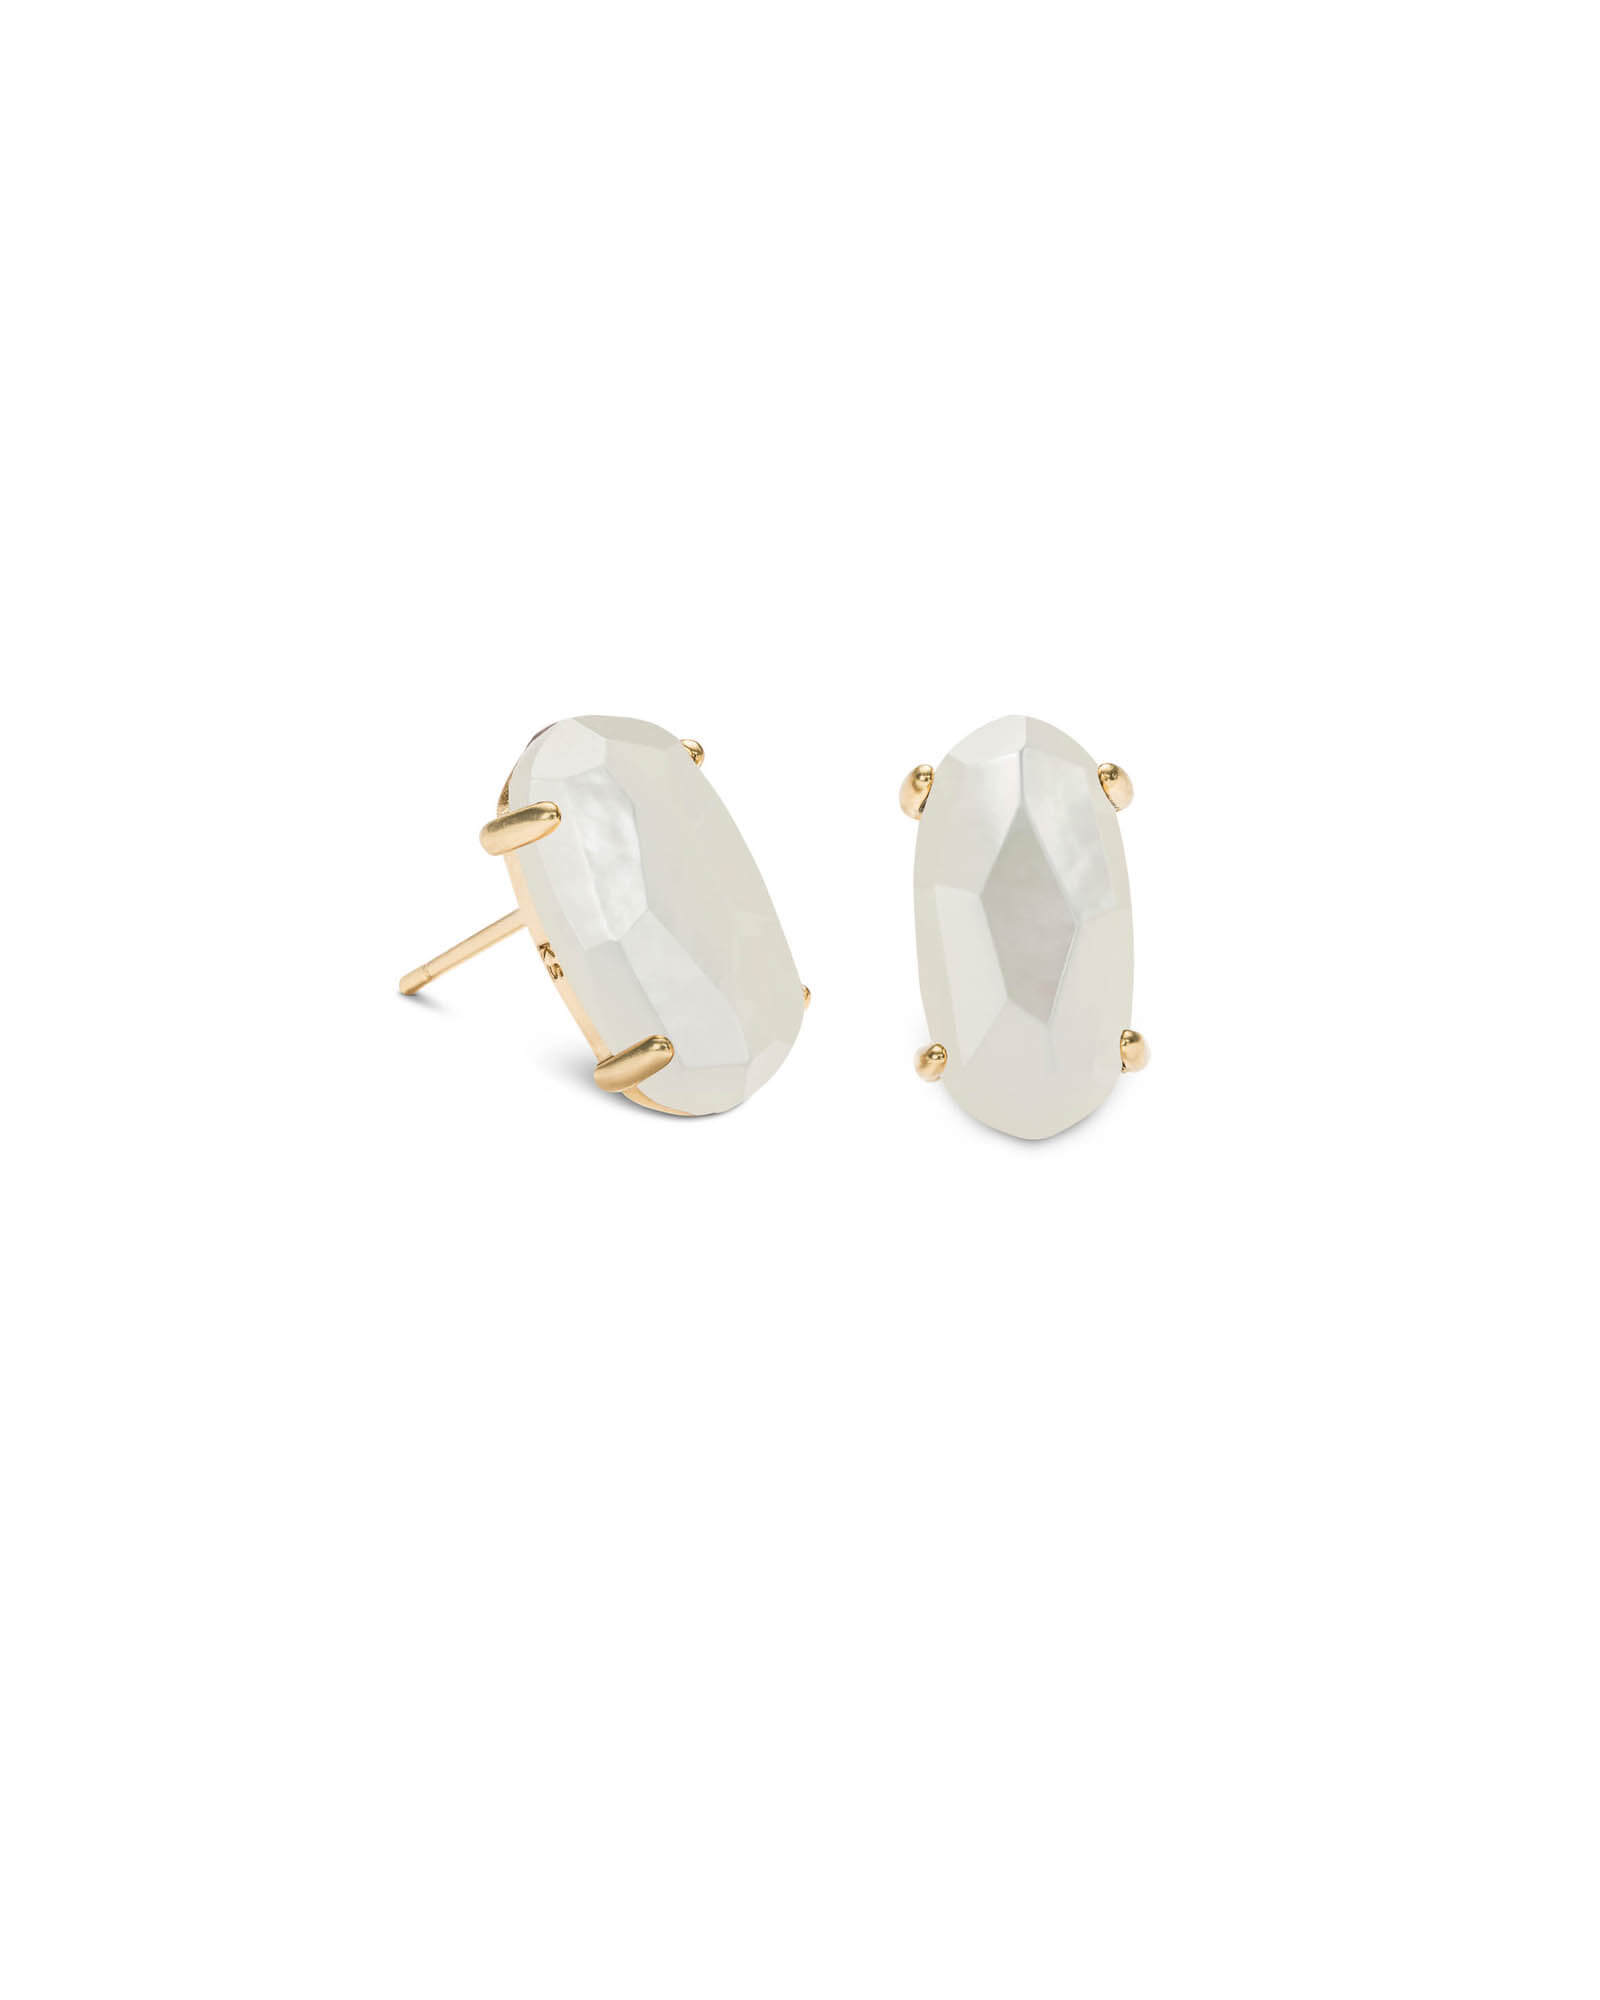 Betty Gold Stud Earrings in Ivory Pearl